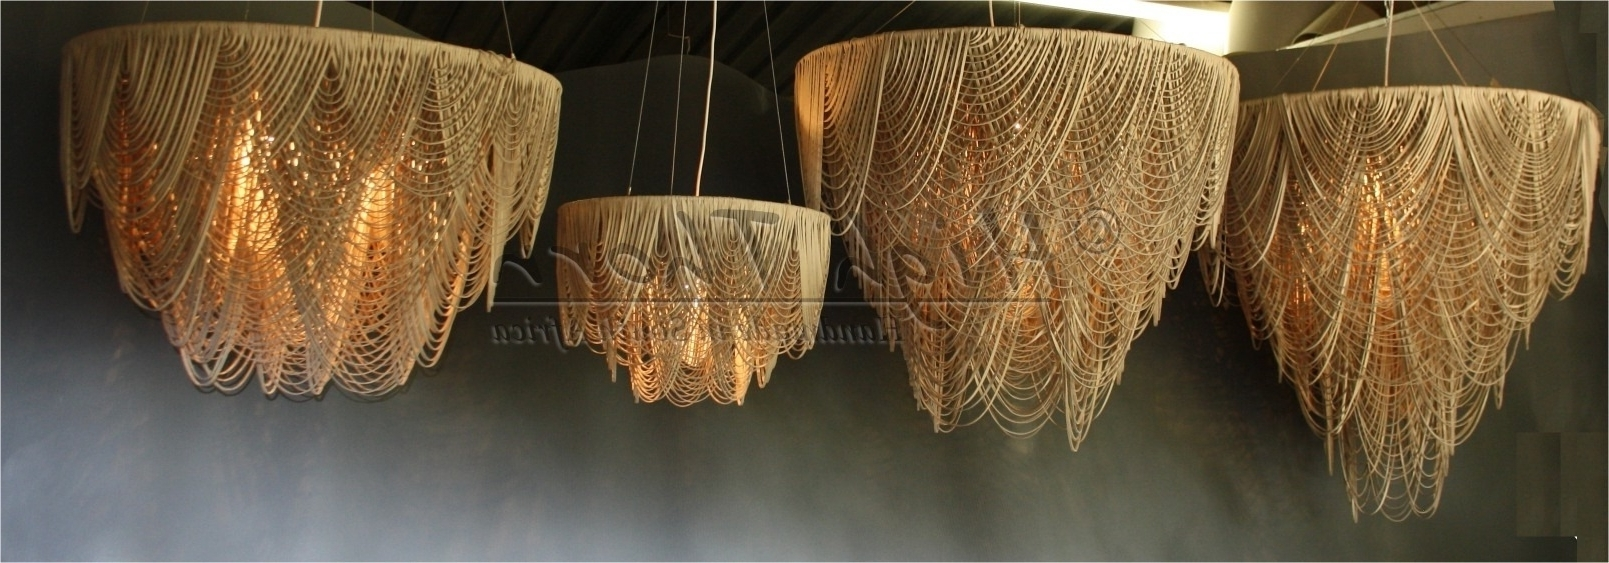 Latest Leather Chandeliers Within High Thorn – Handmade In South Africa – Lighting, Furniture, Home (View 2 of 20)